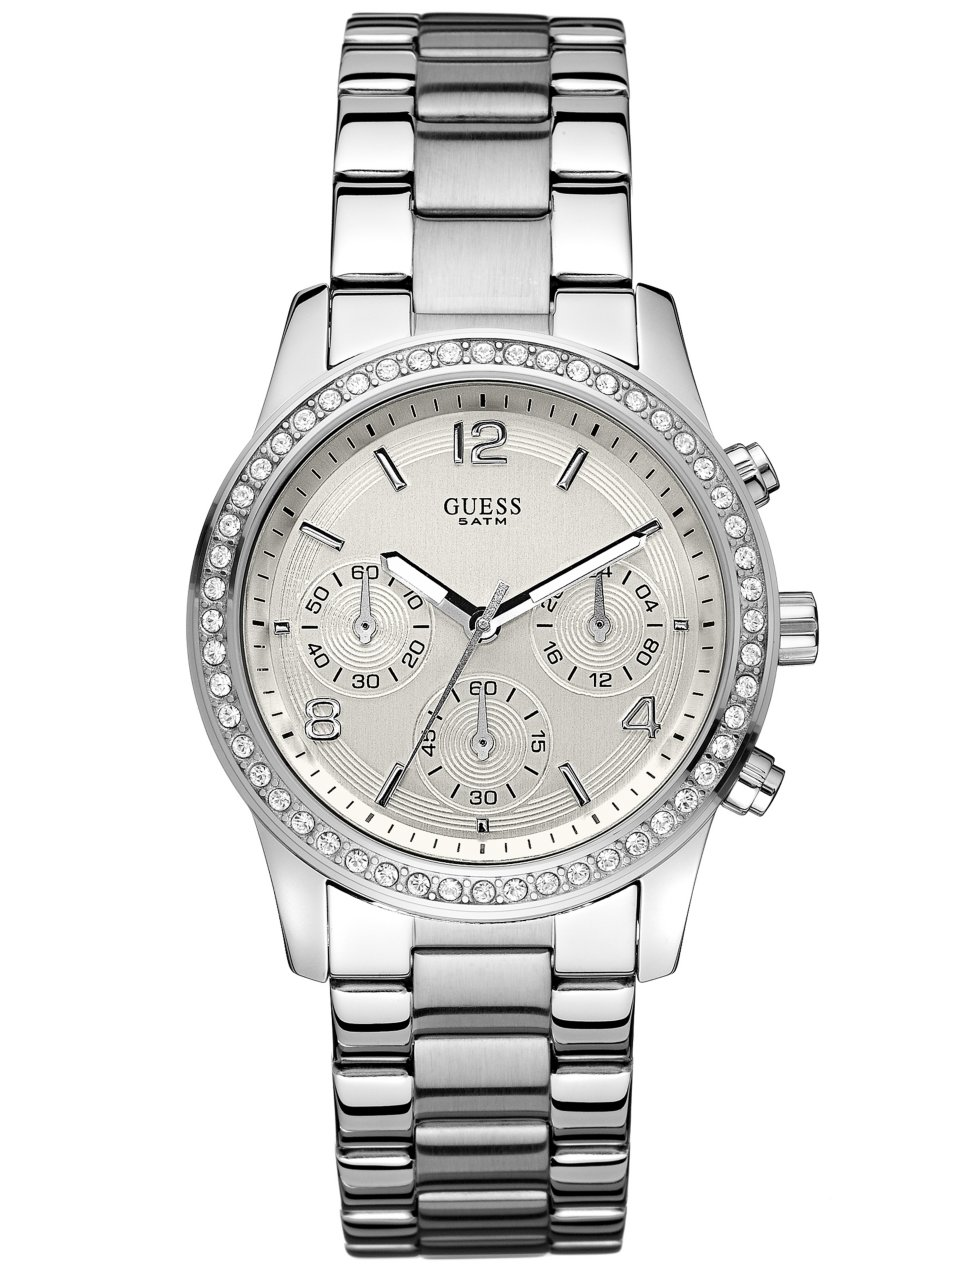 GUESS Feminine Contemporary Chronograph Watch